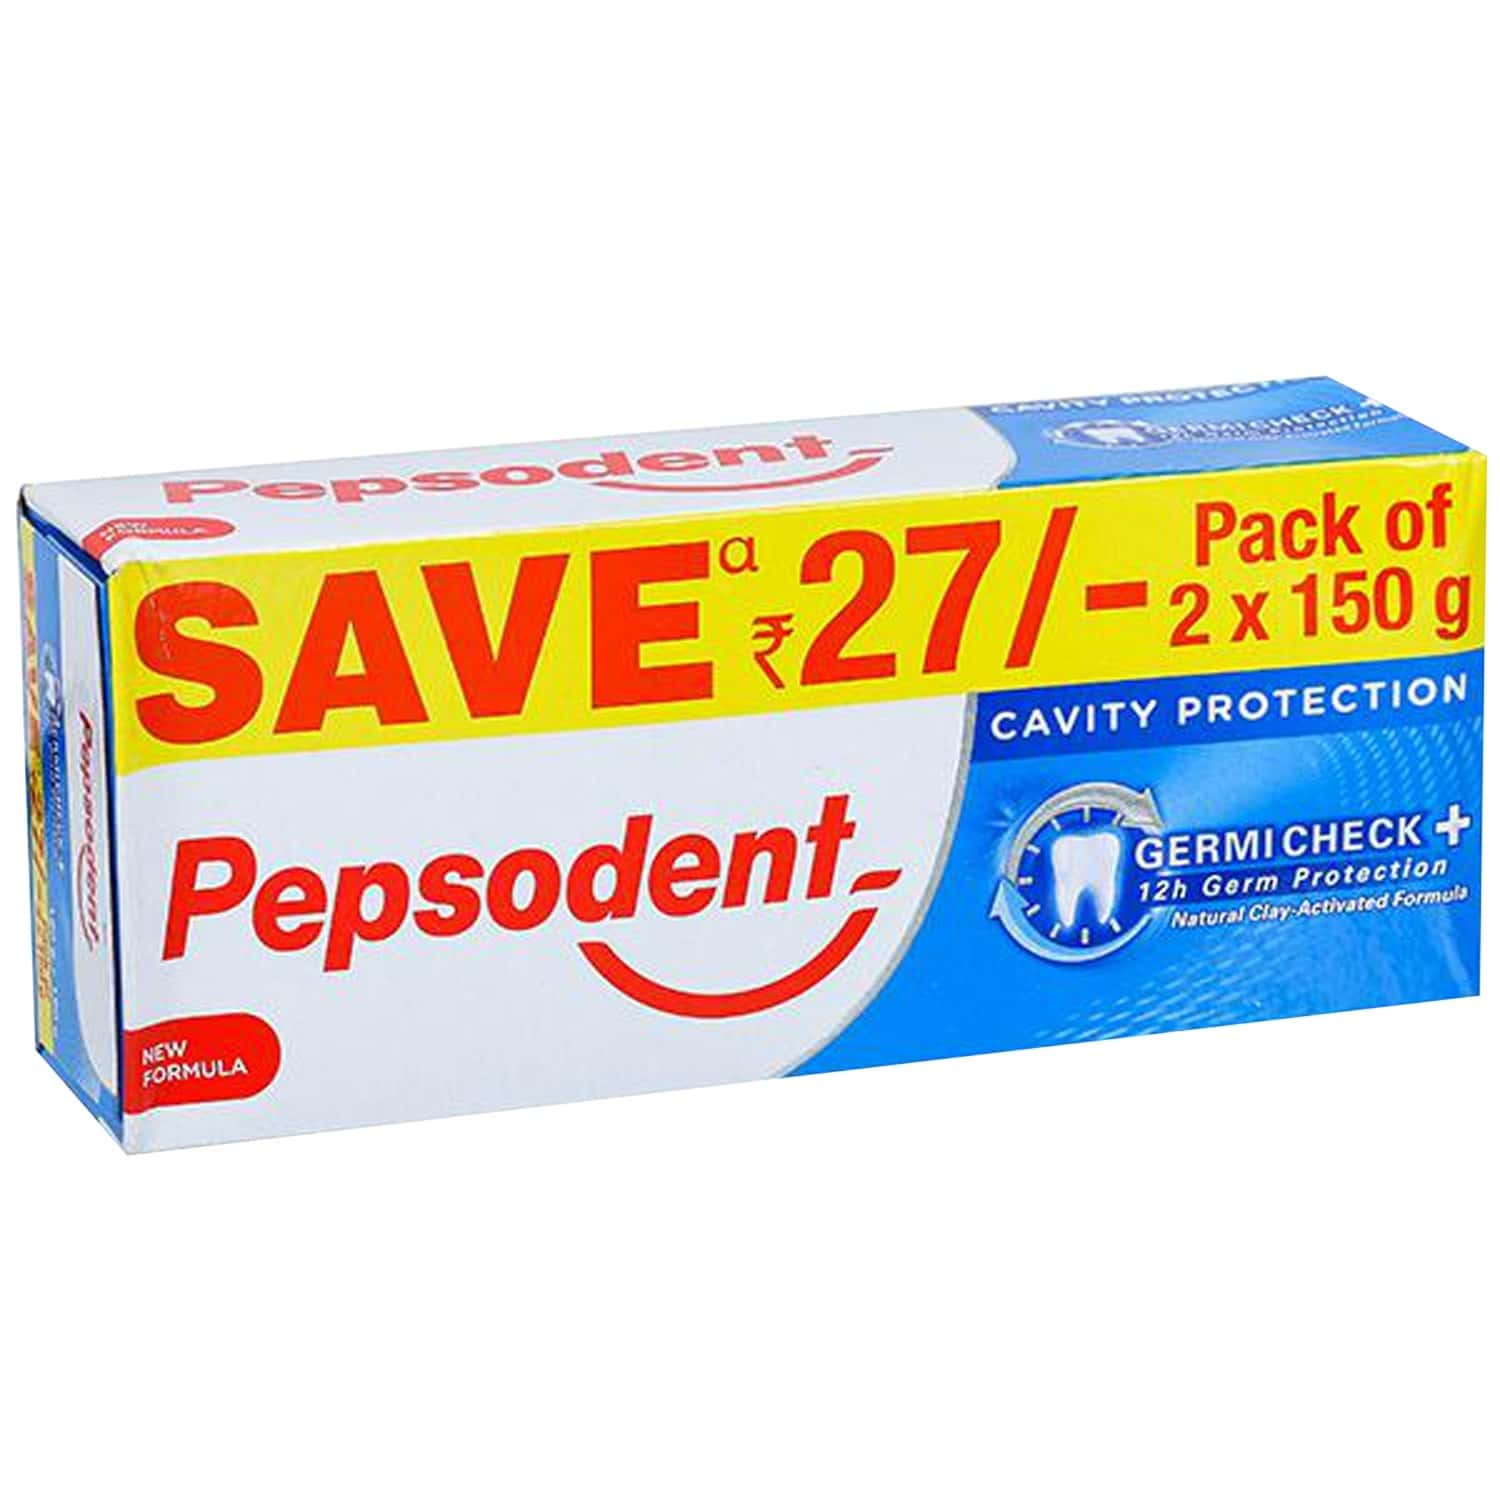 Pepsodent Germi Check Cavity Protection, 2 X 150 Gm With Save Rs. 27/-